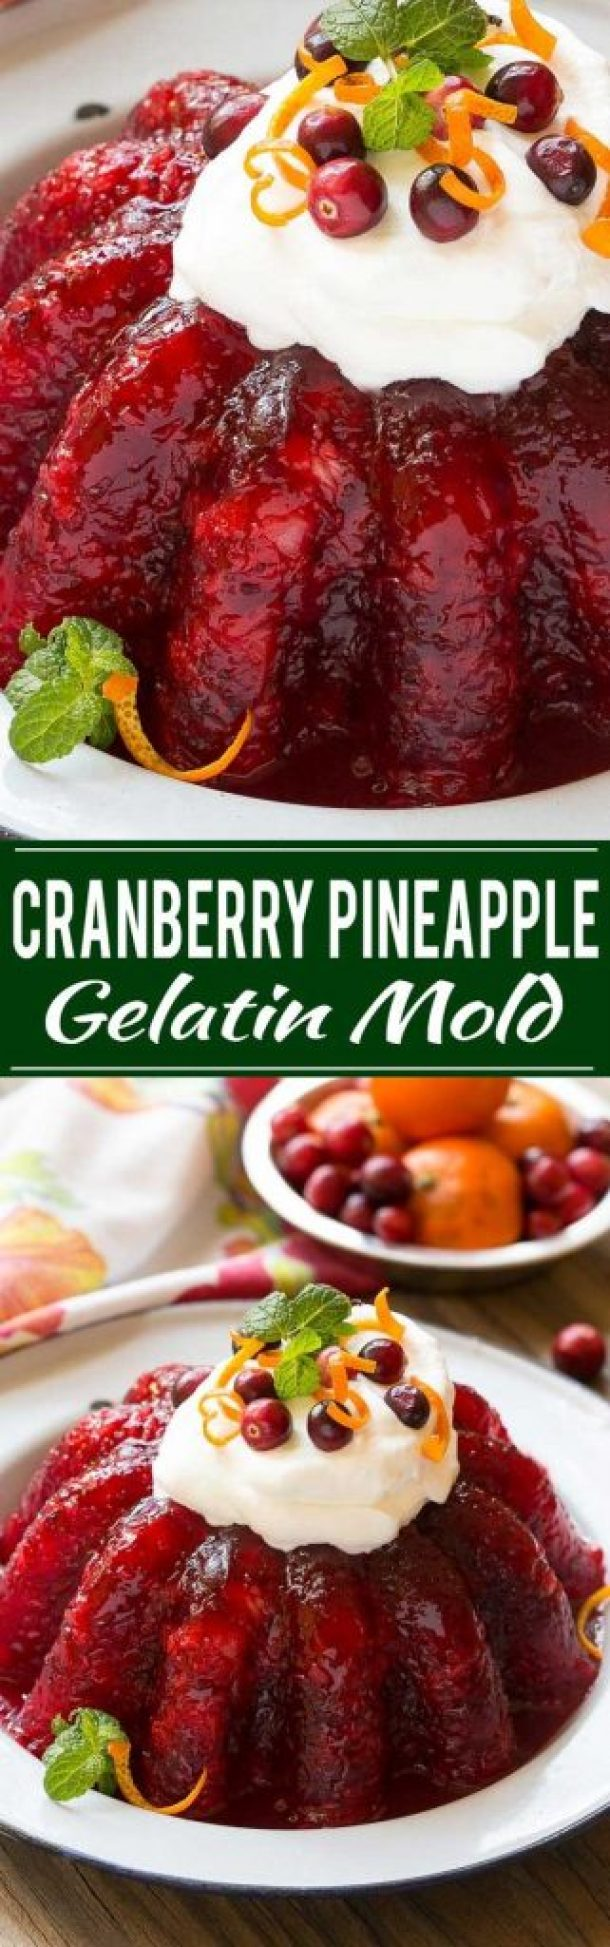 Raspberry, Cranberry, Pineapple and Orange Holiday Jello Mold Recipe | Dinner at the Zoo